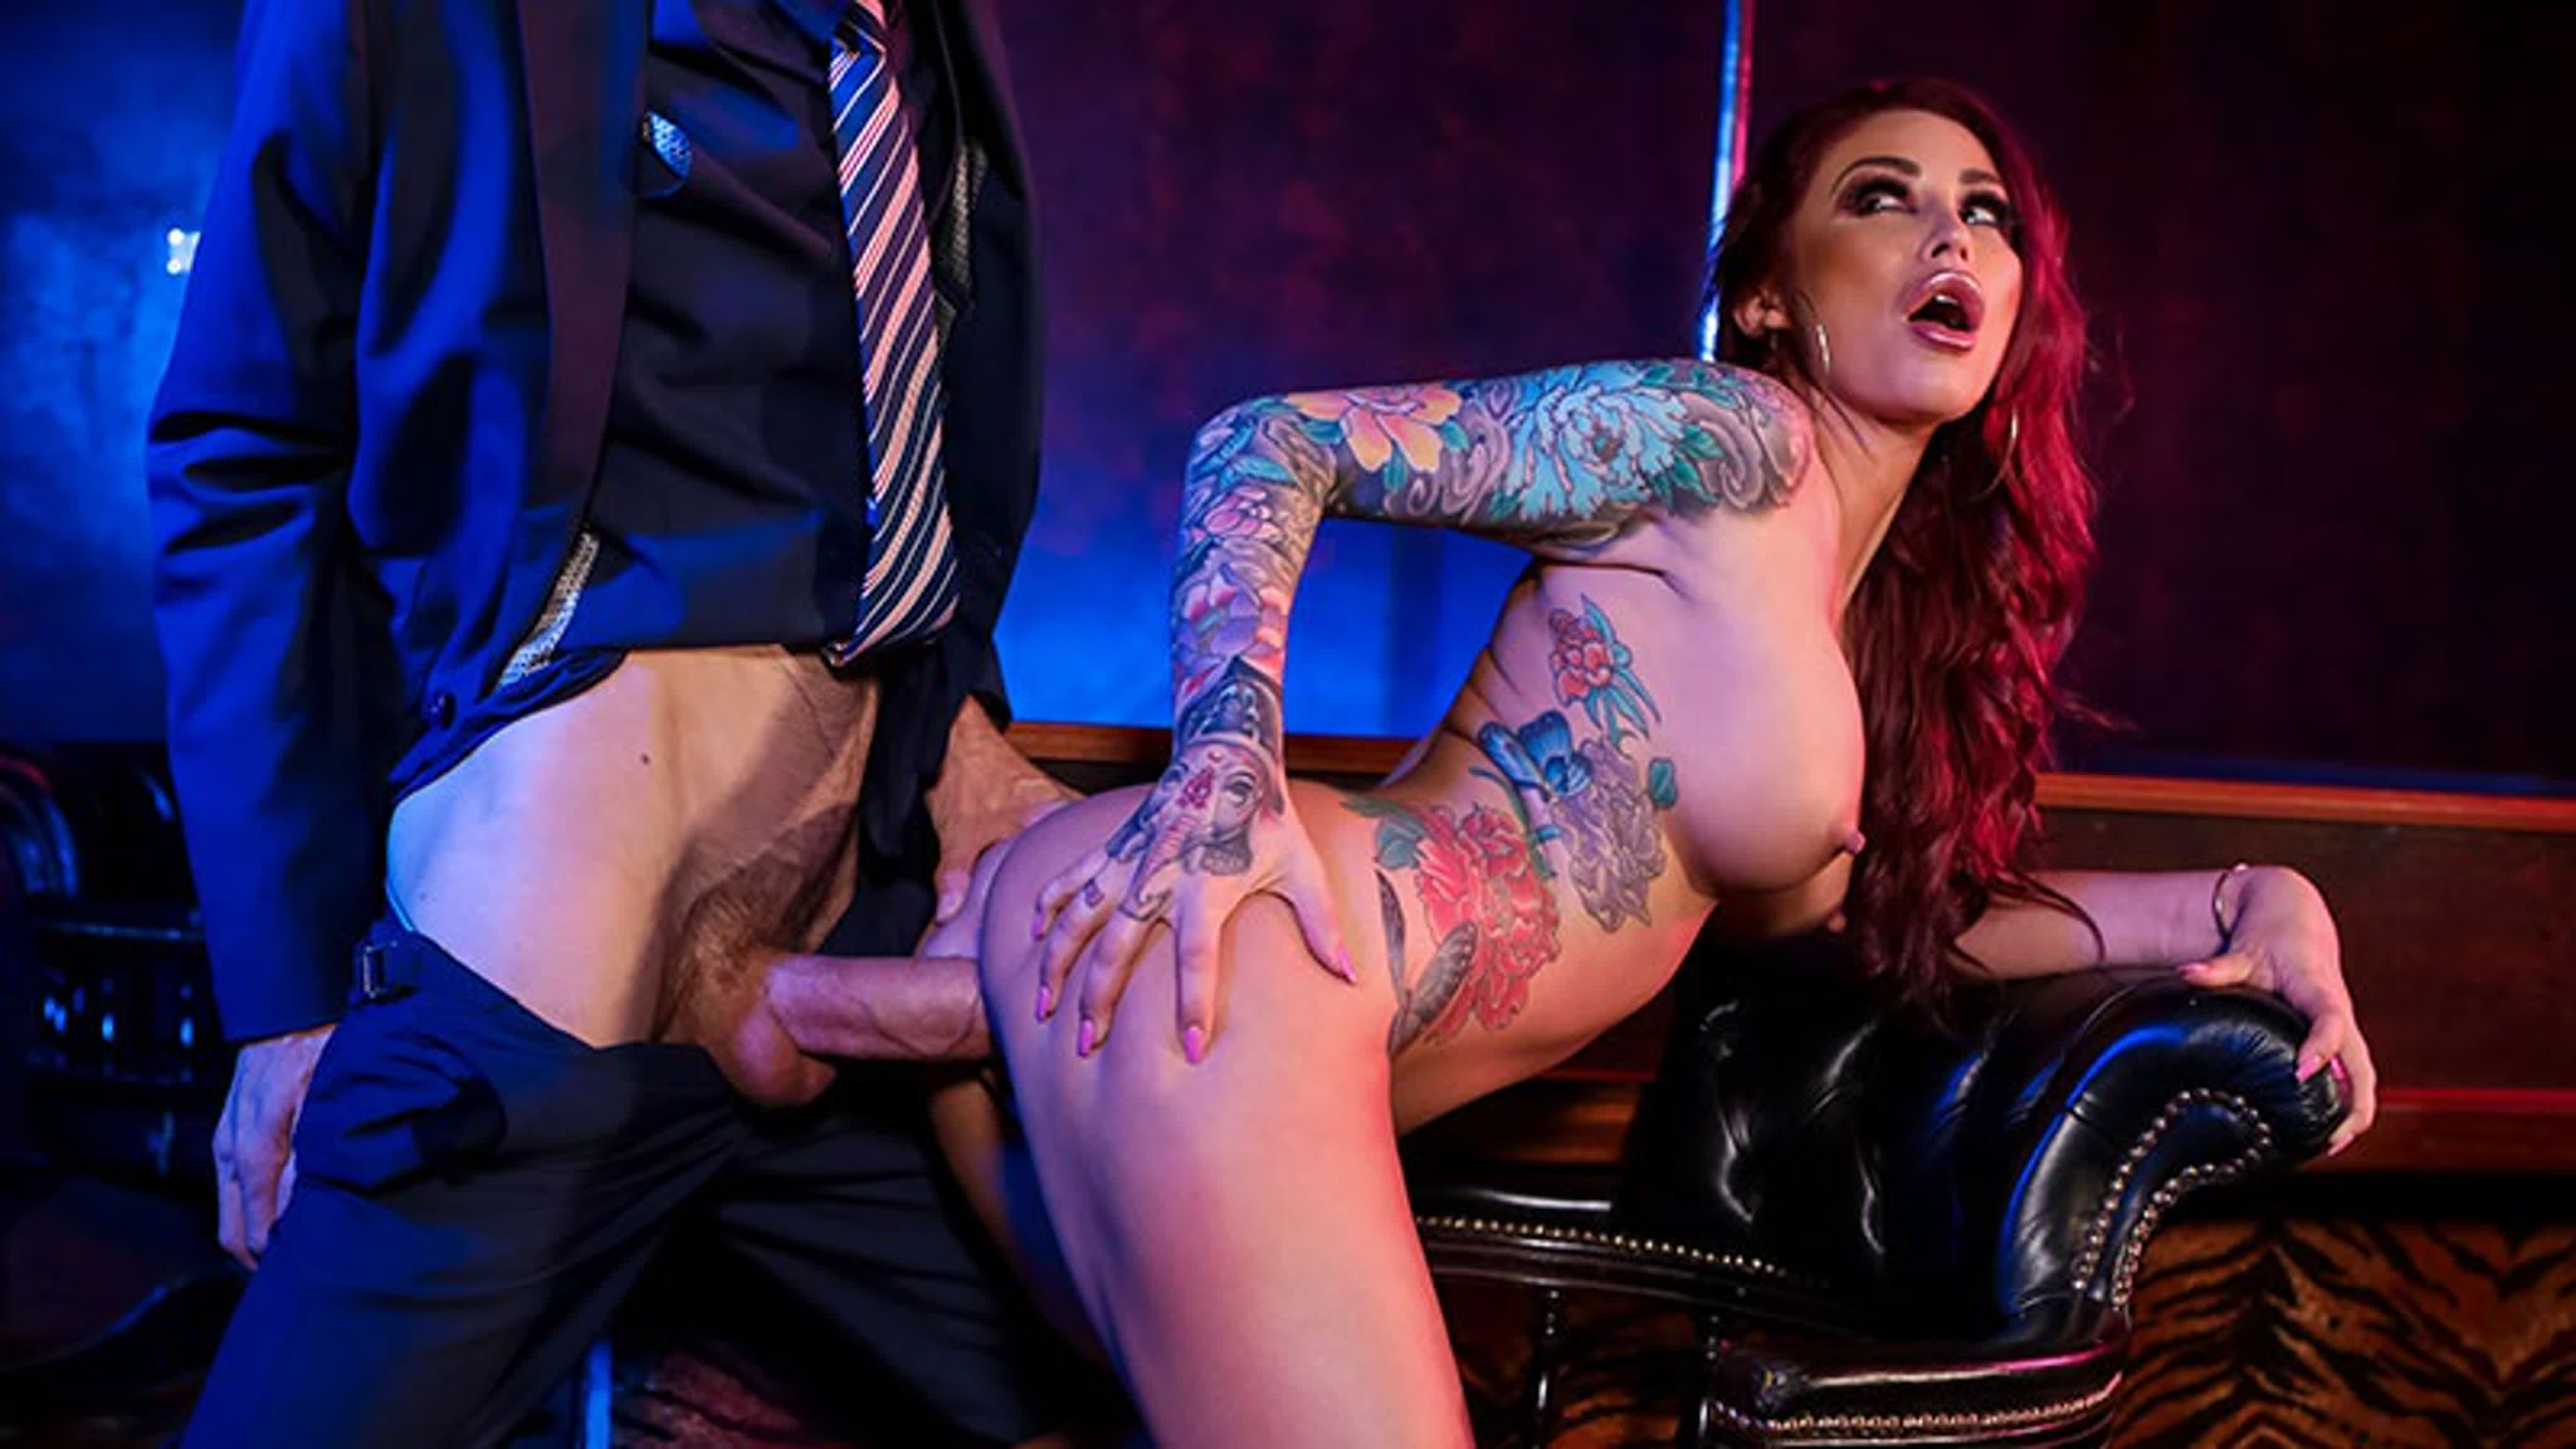 Dirty stripper whore with tattoo fucking bbc after club nxsnacksvip free pics